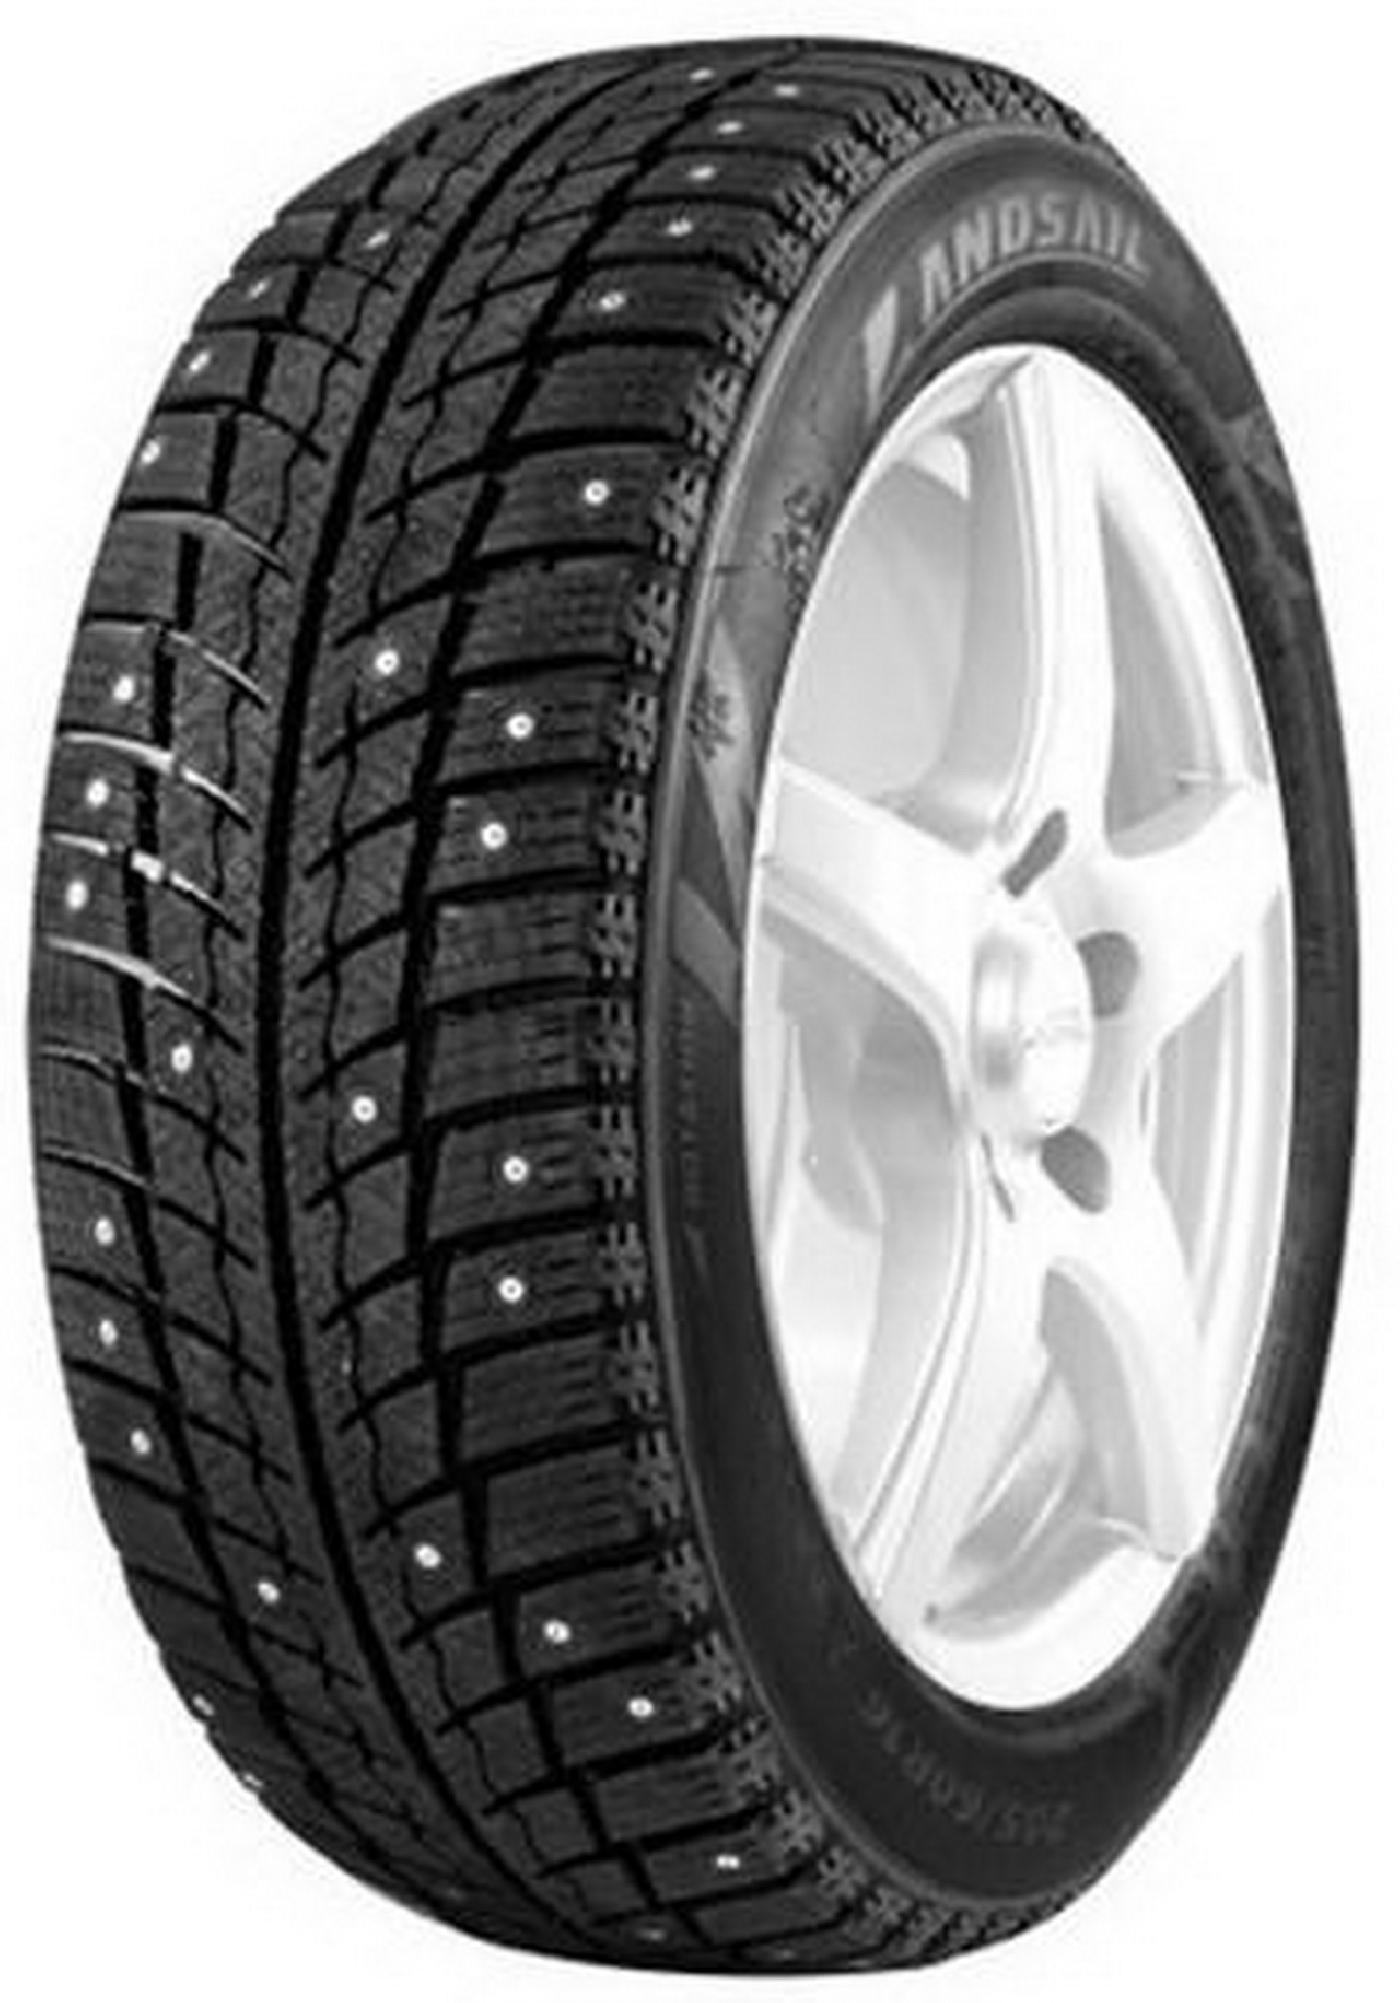 LANDSAIL ICE STAR IS33 212 215/60 R16 99T